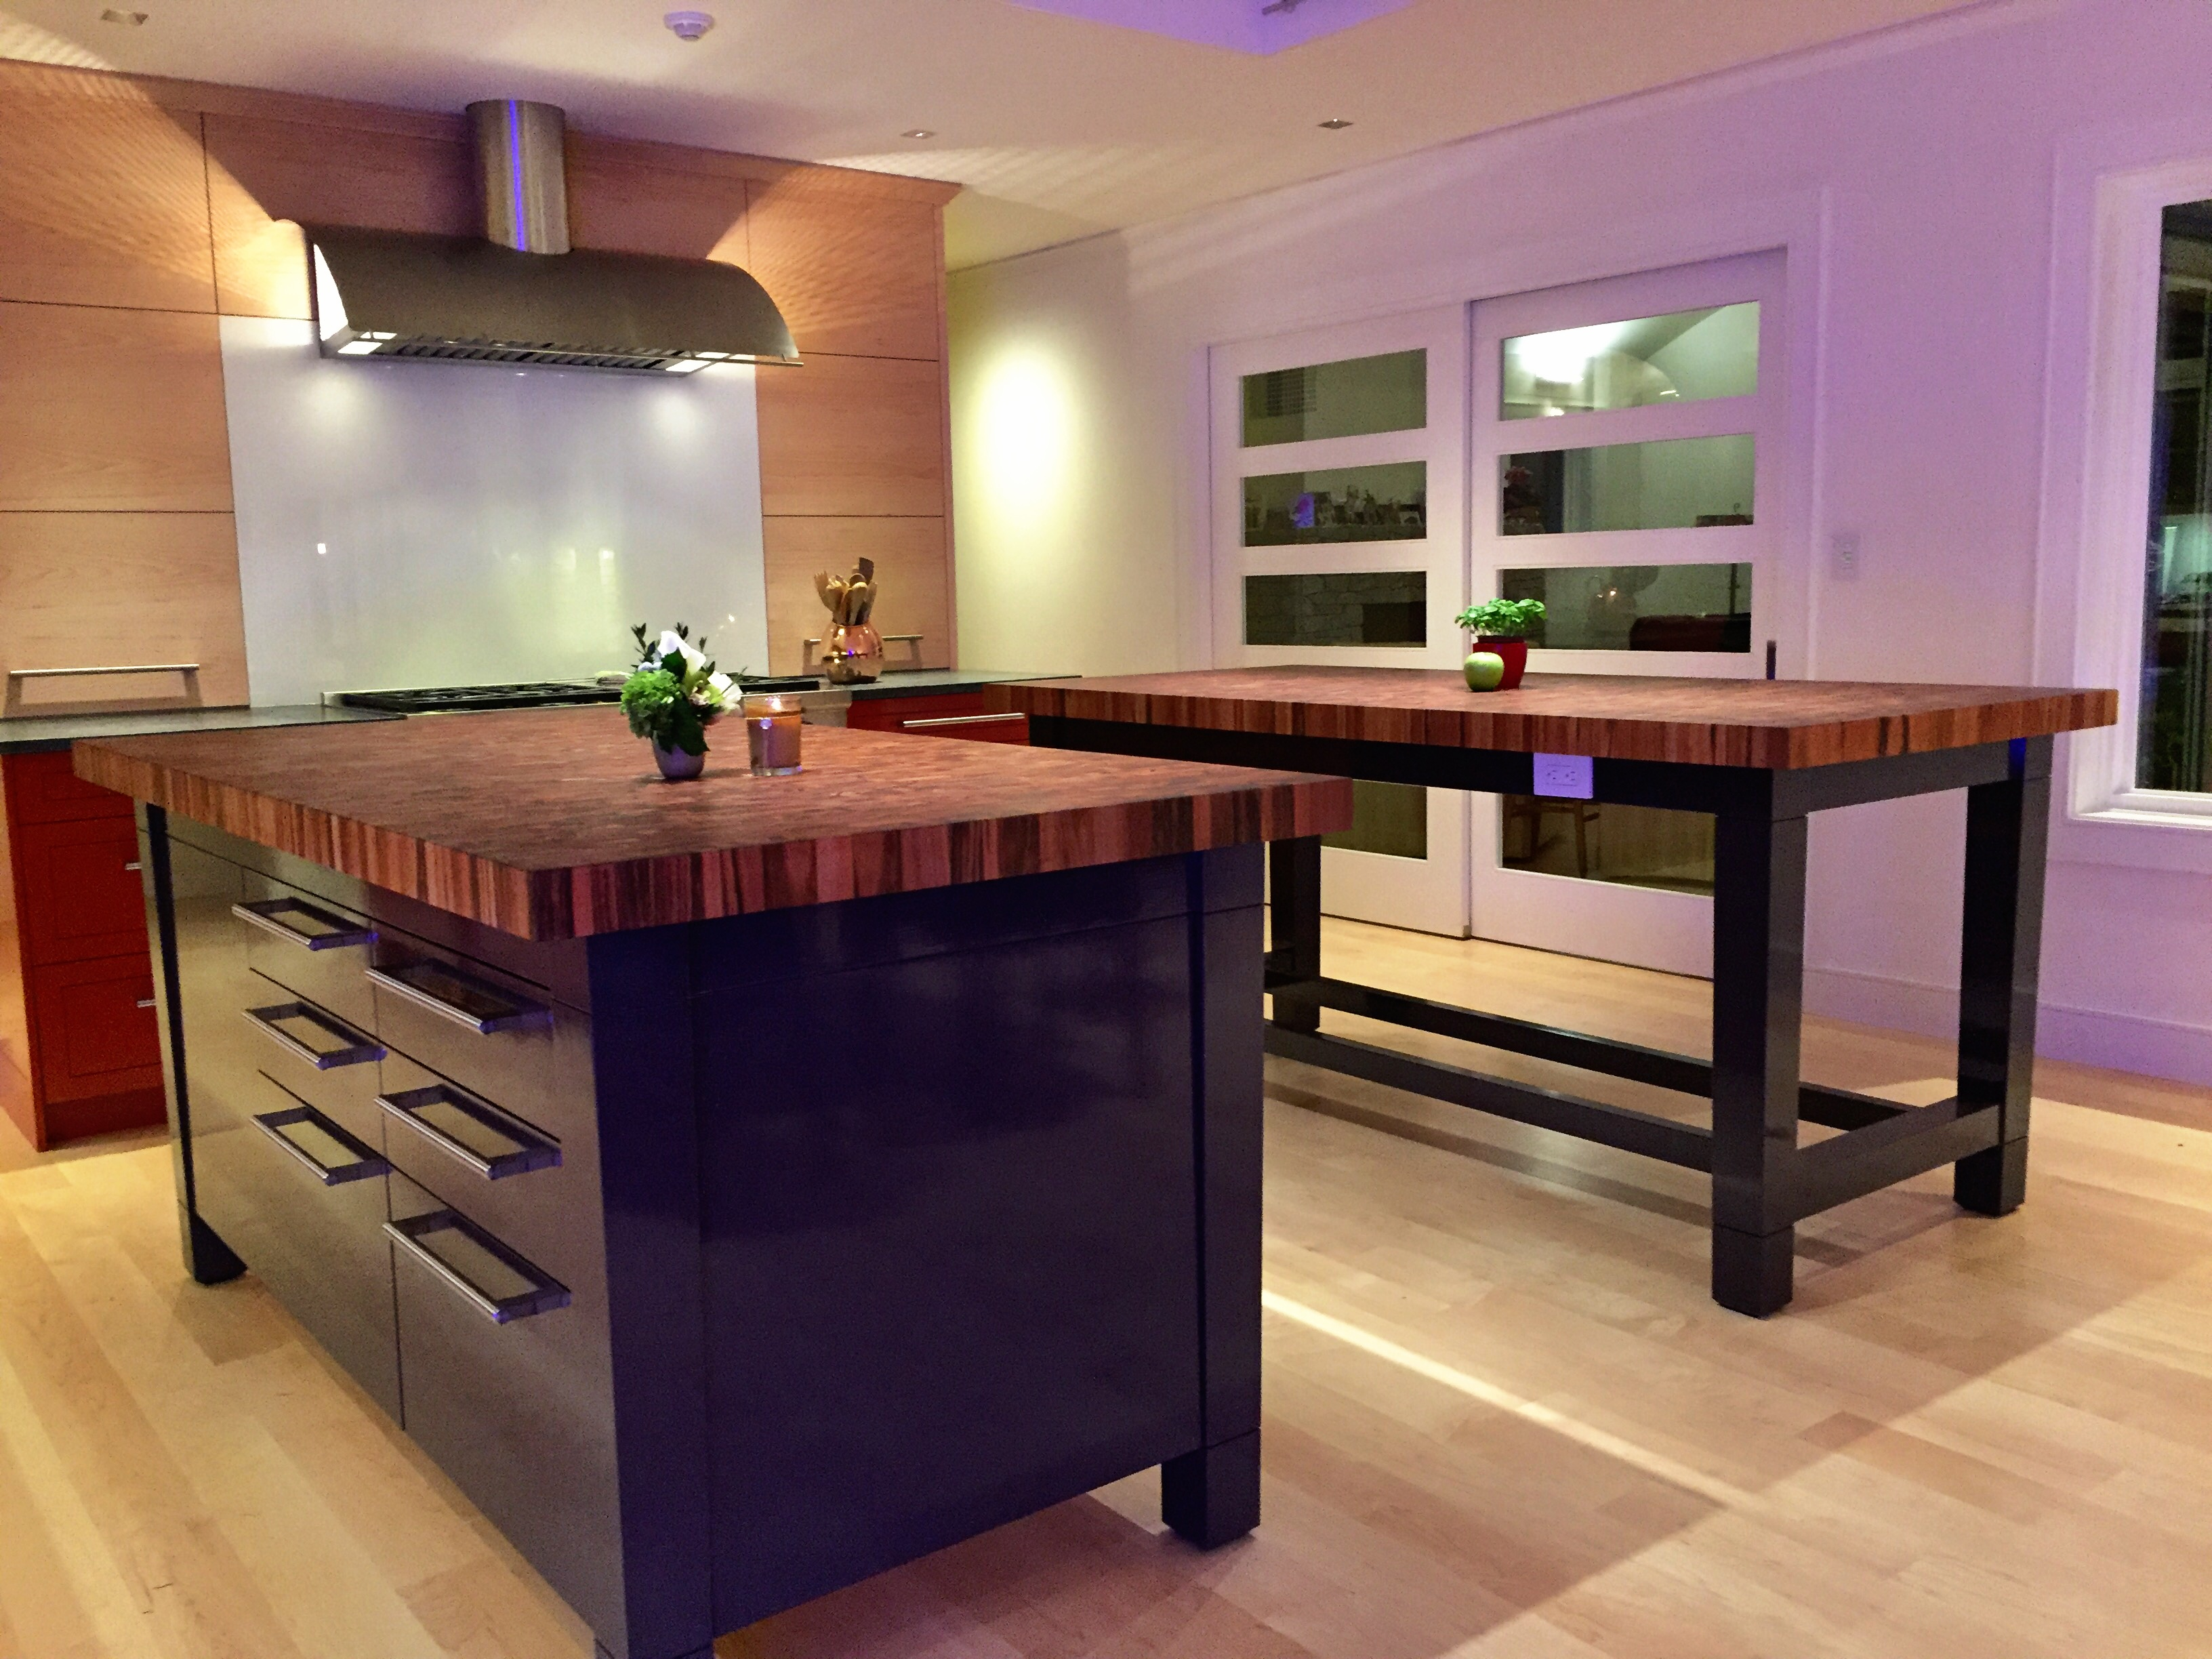 small kitchen island butcher block. Interesting Small Tigerwood Butcher Block Countertops And Small Kitchen Island